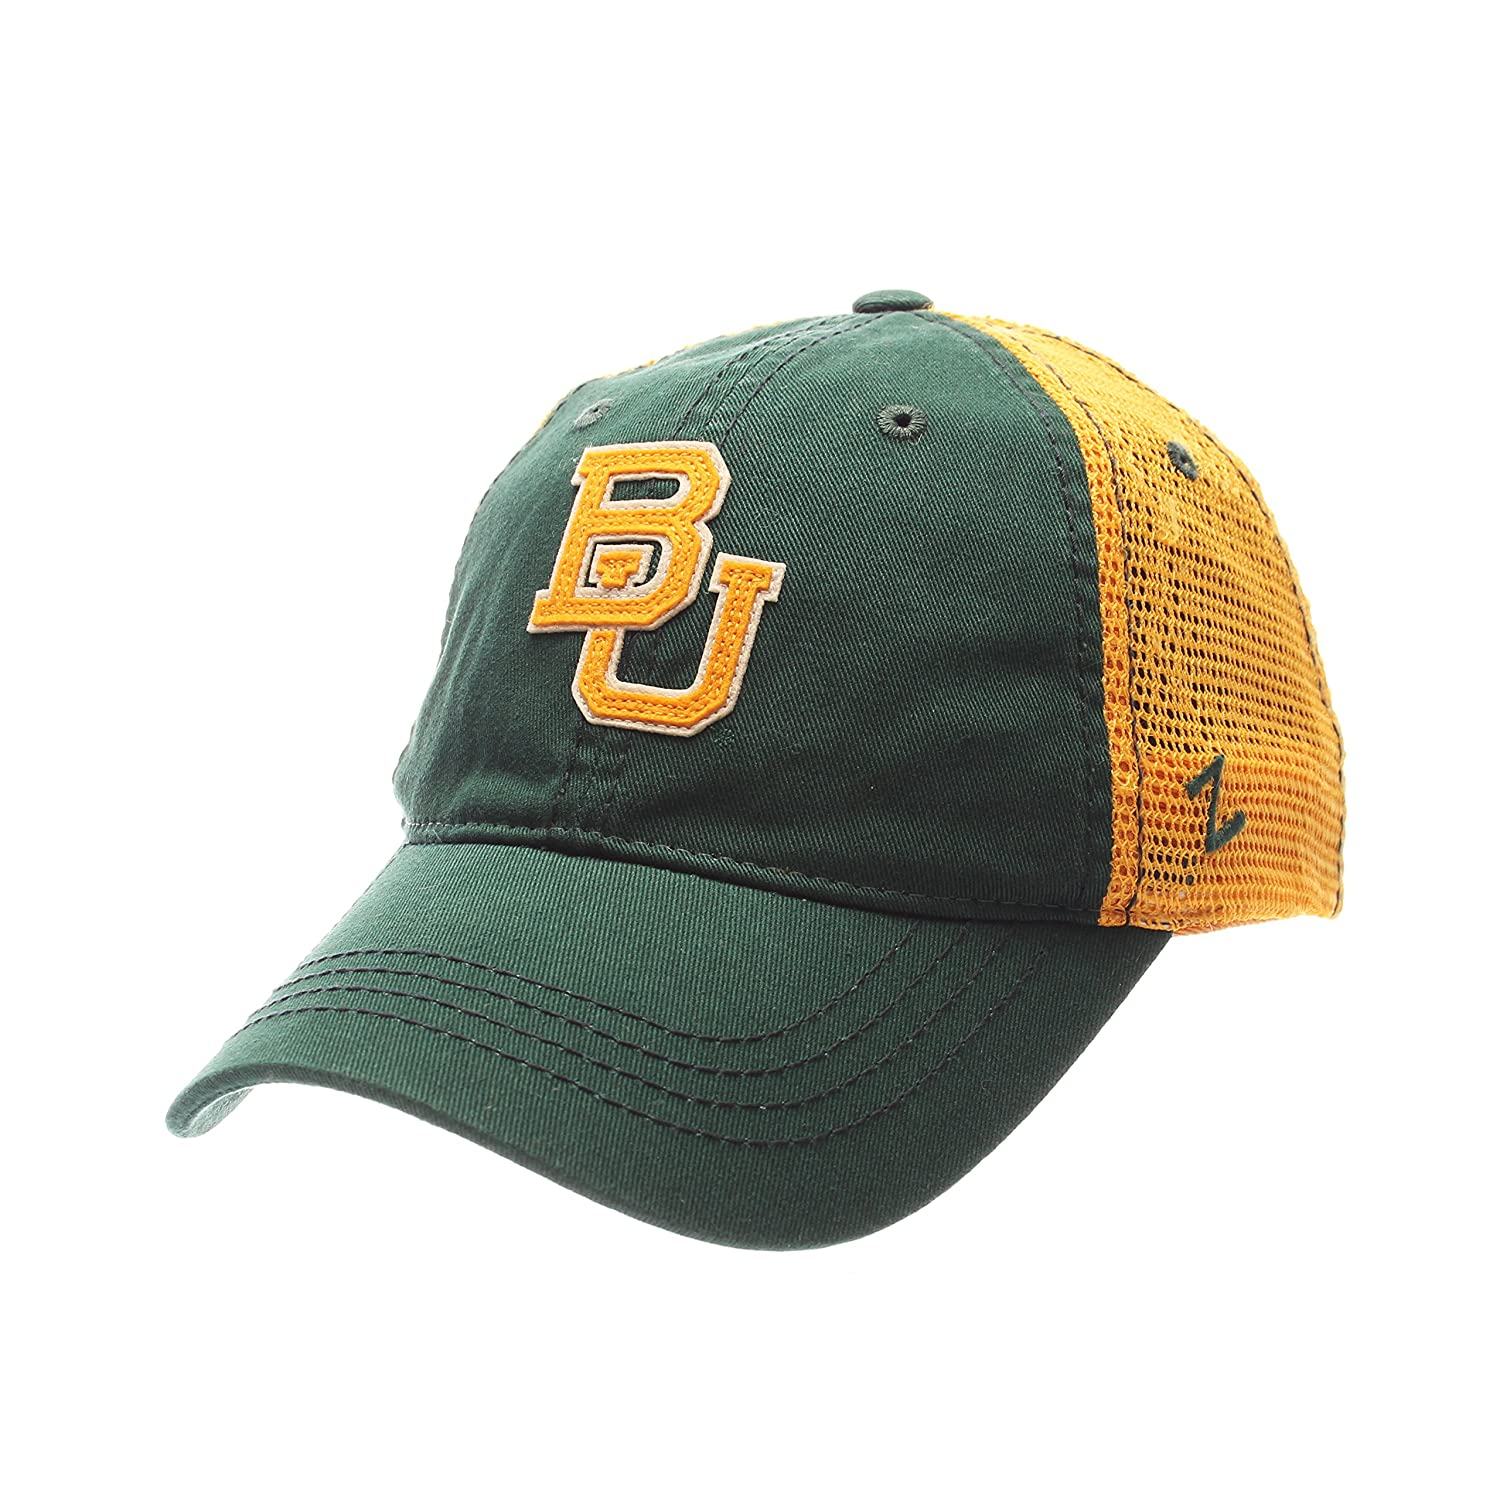 a5ba44393cb ... greece amazon zhats ncaa baylor bears mens springtime relaxed cap  adjustable forest sports outdoors 9b1c4 ca35f